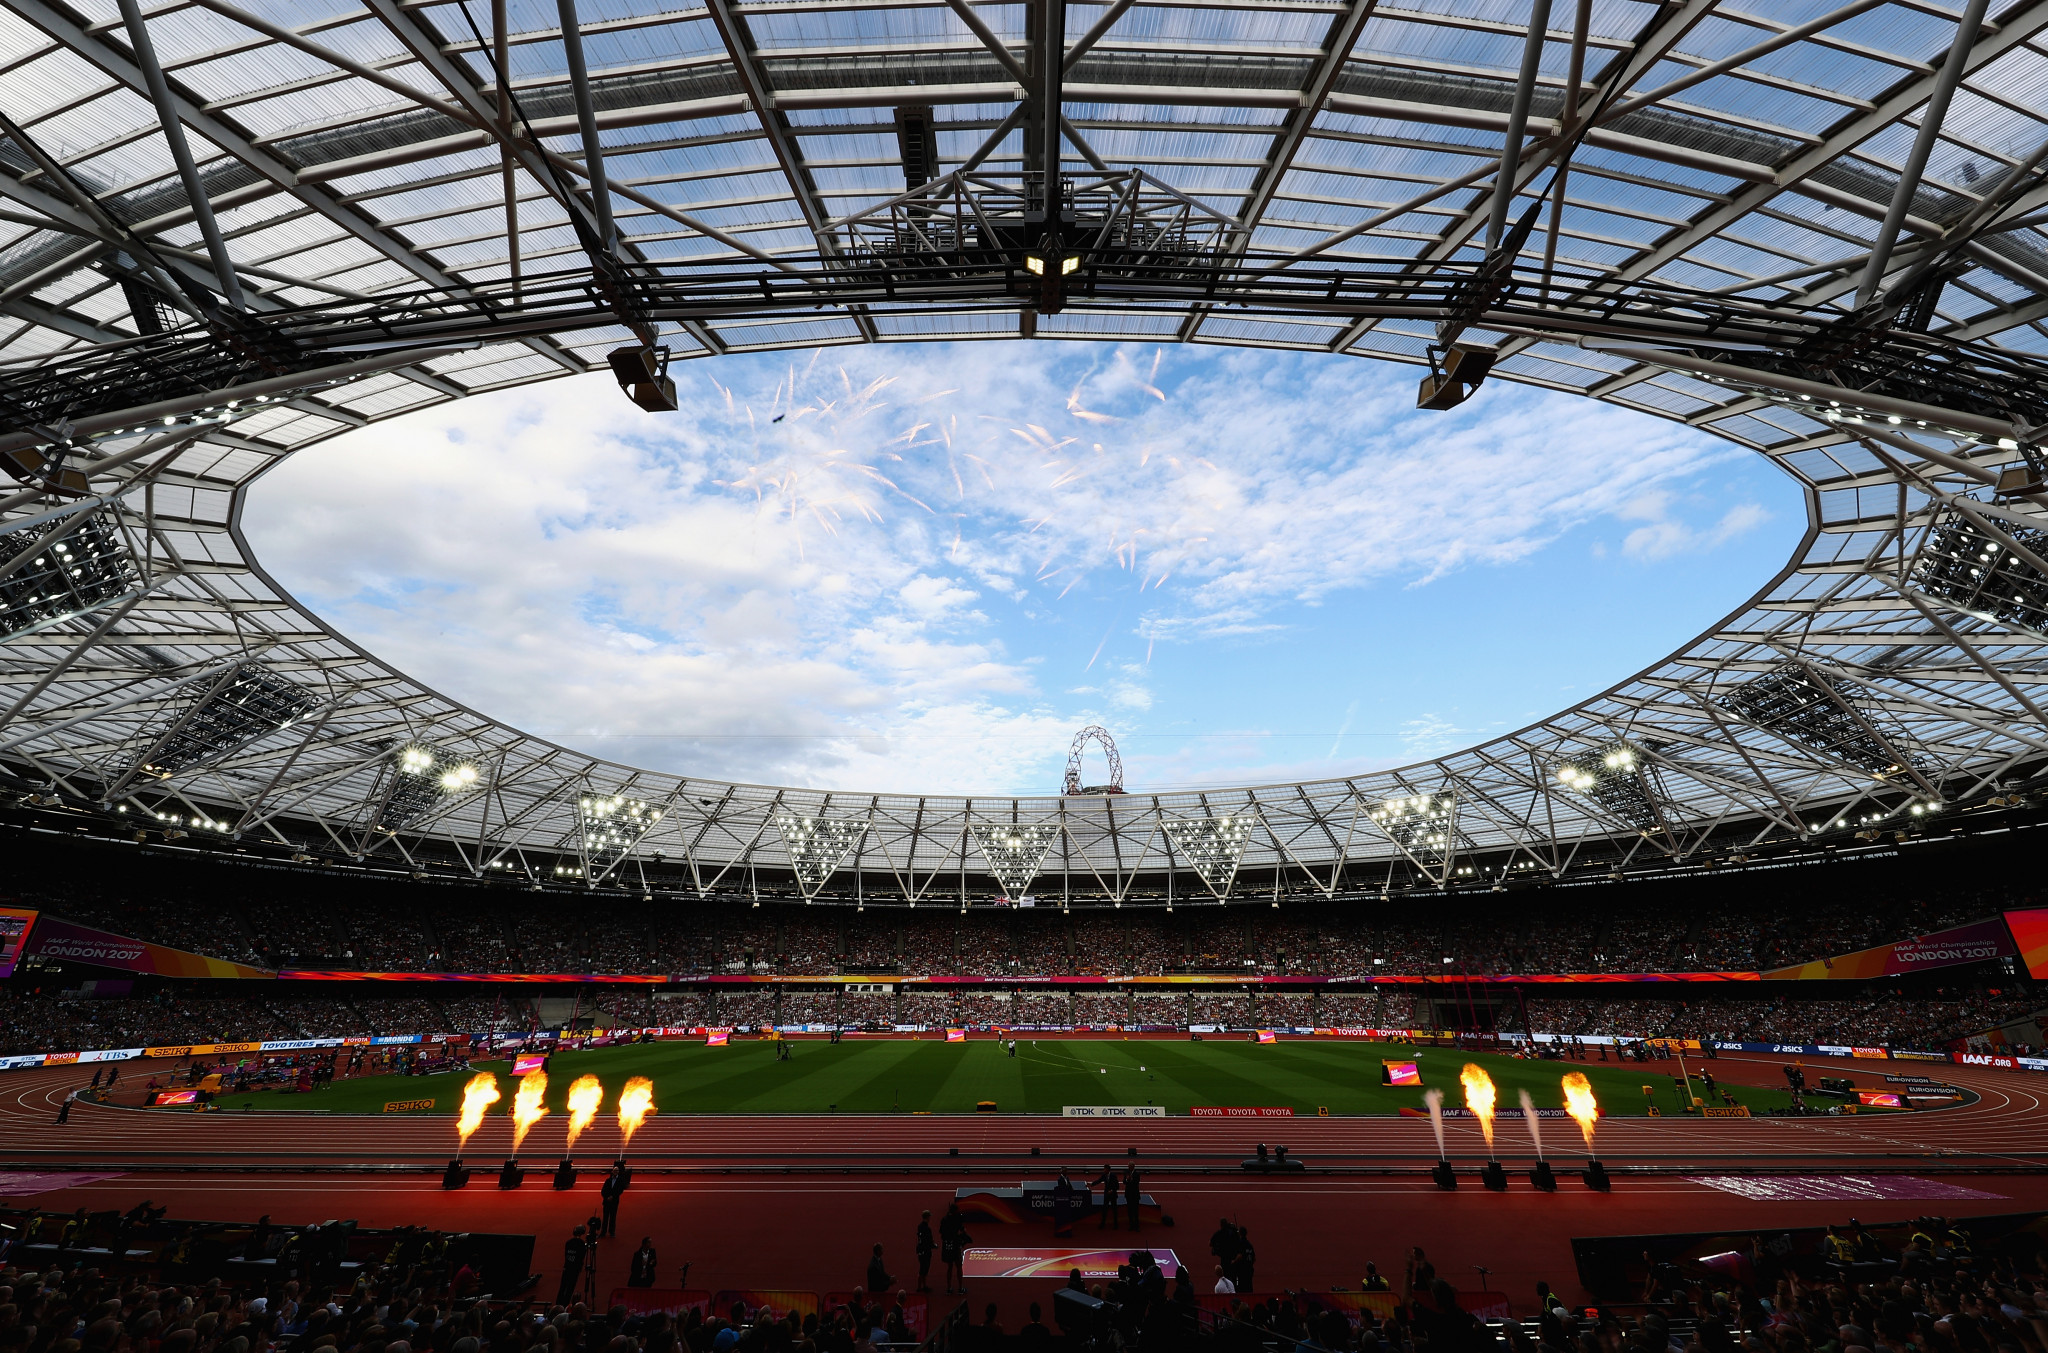 Eight nations ready to contest inaugural Athletics World Cup in London